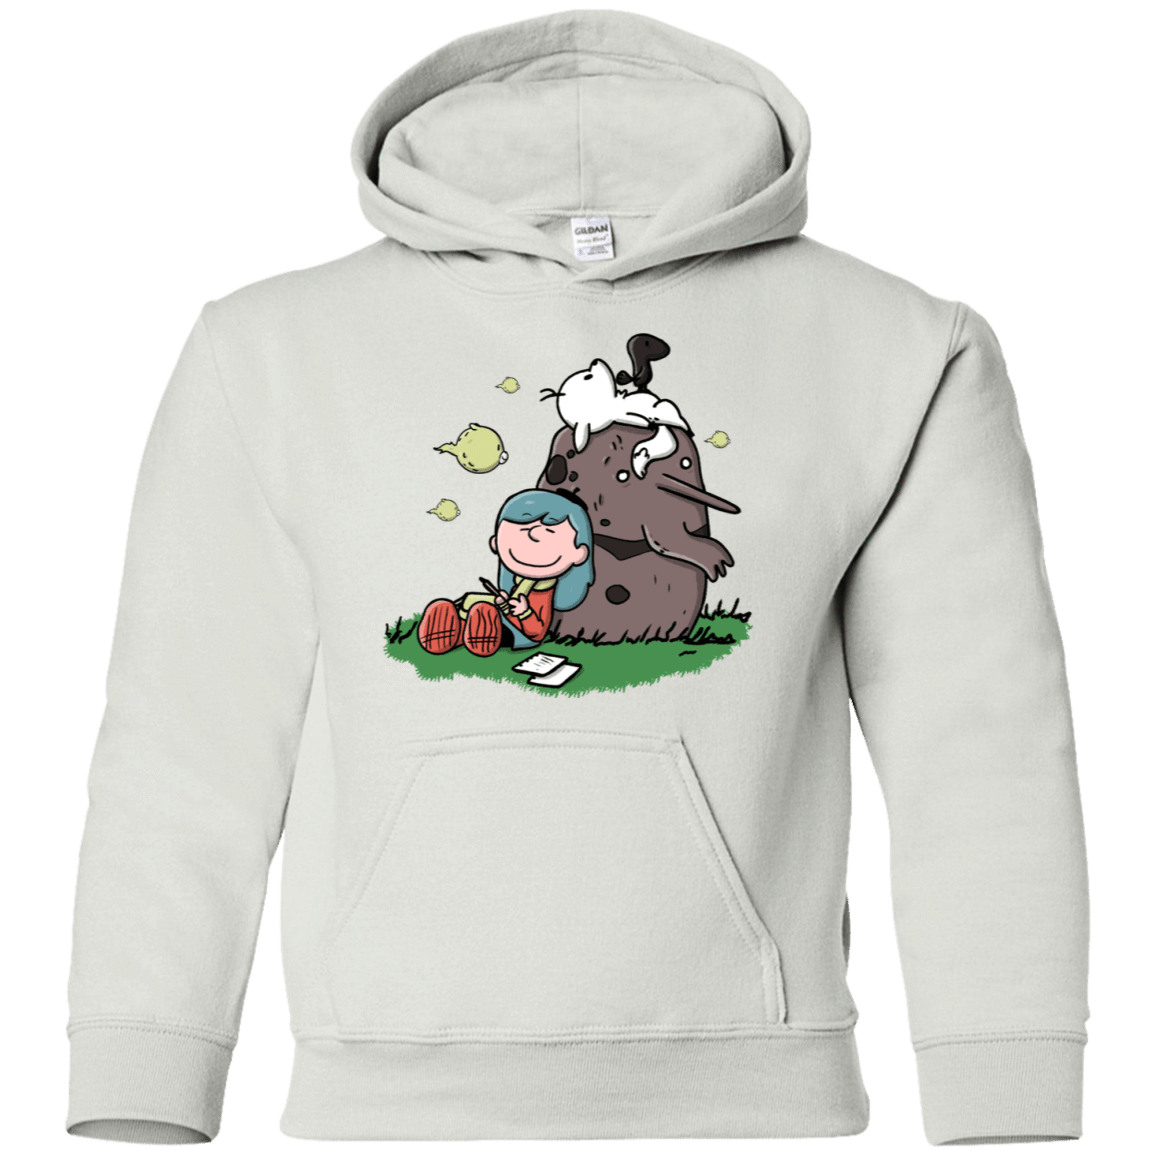 Sweatshirts White / YS Hilda Brown Youth Hoodie